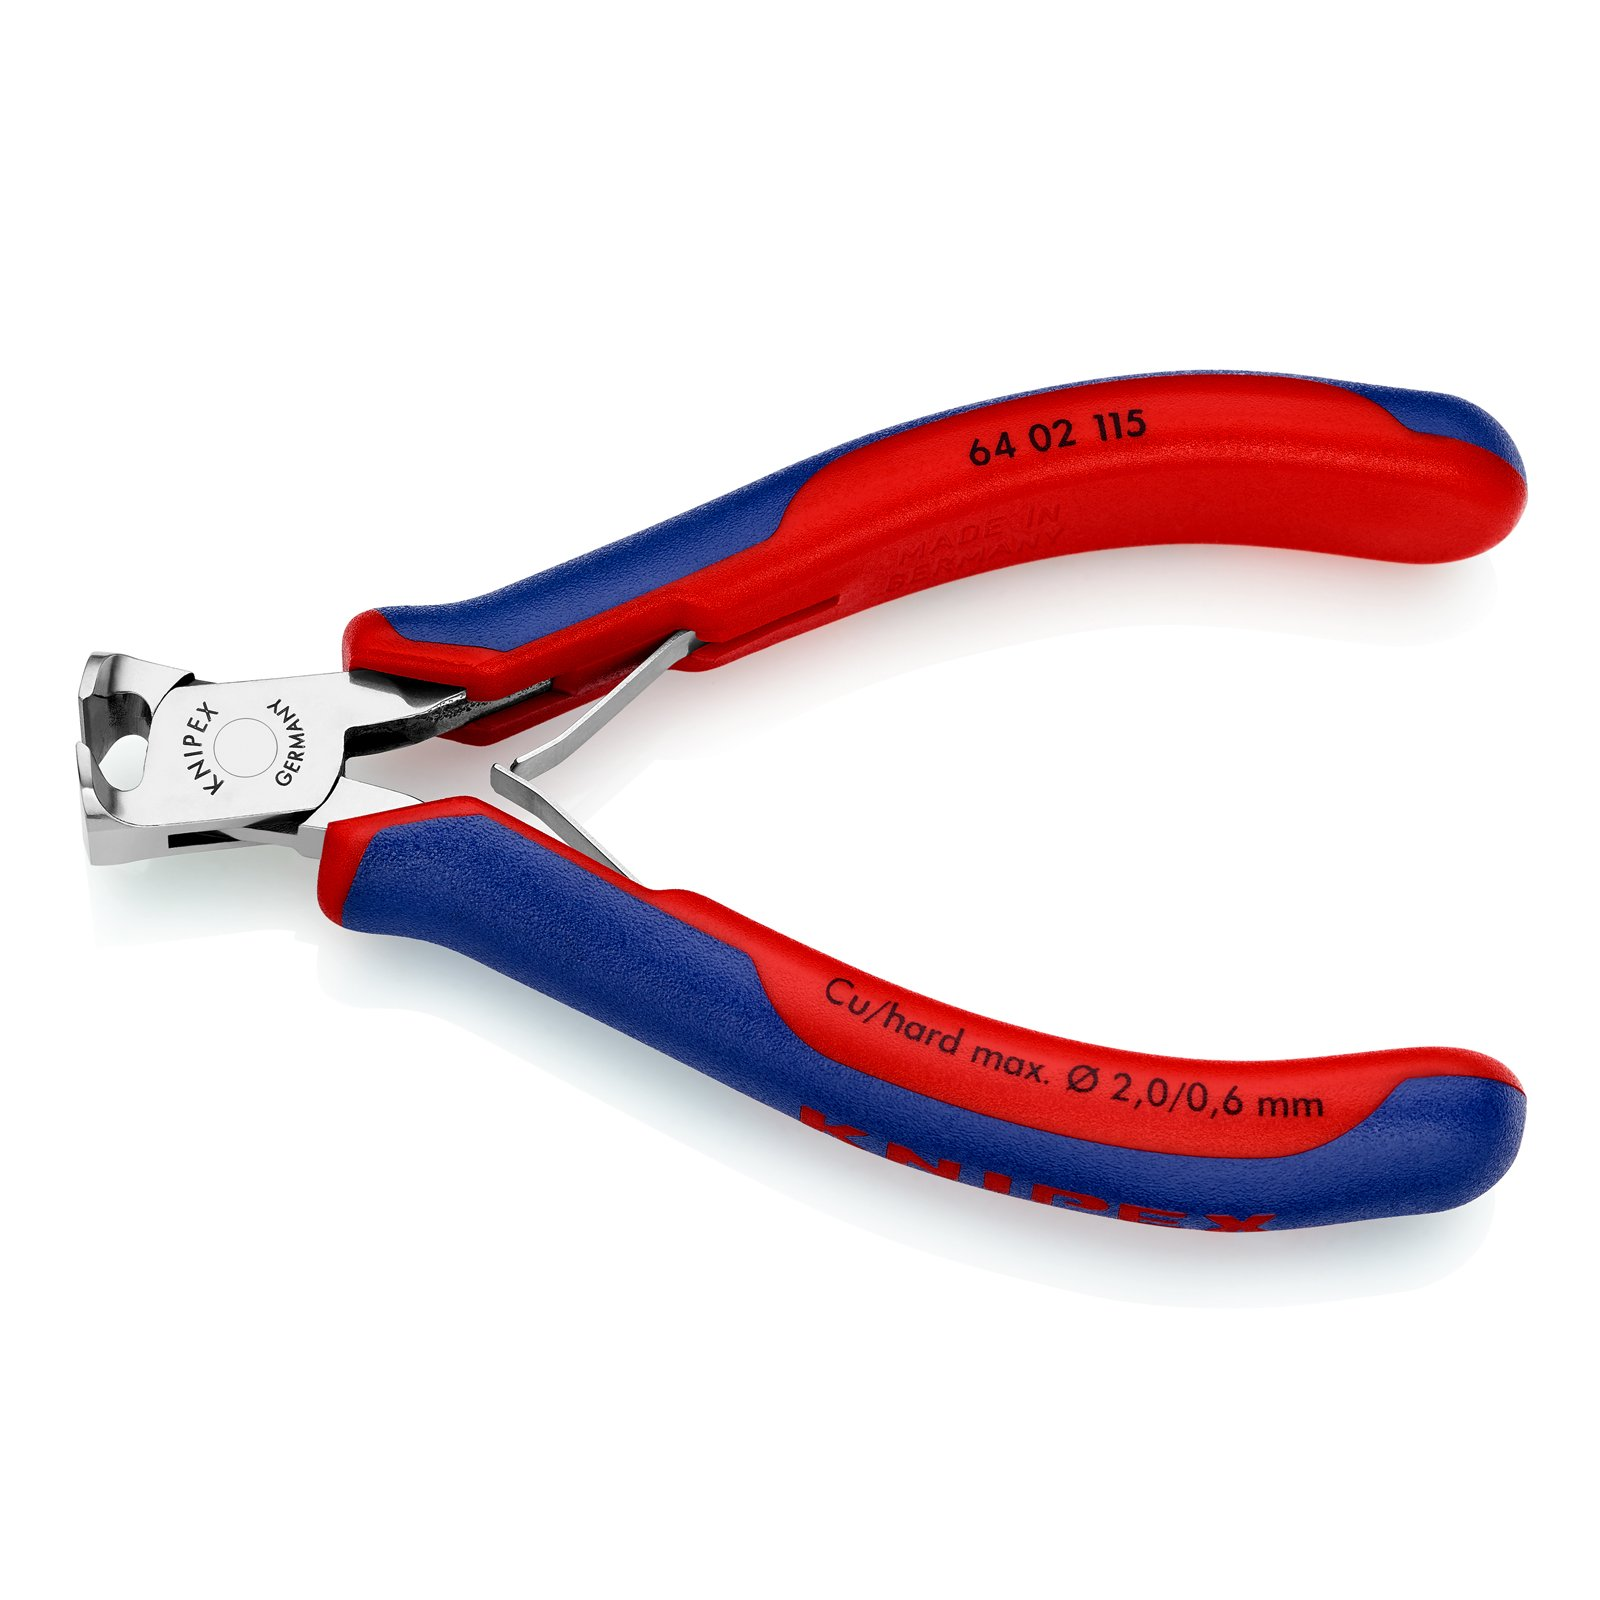 Knipex 64 02 115 Electronics End Cutting Nippers 4,53'' with soft handle by KNIPEX Tools (Image #2)